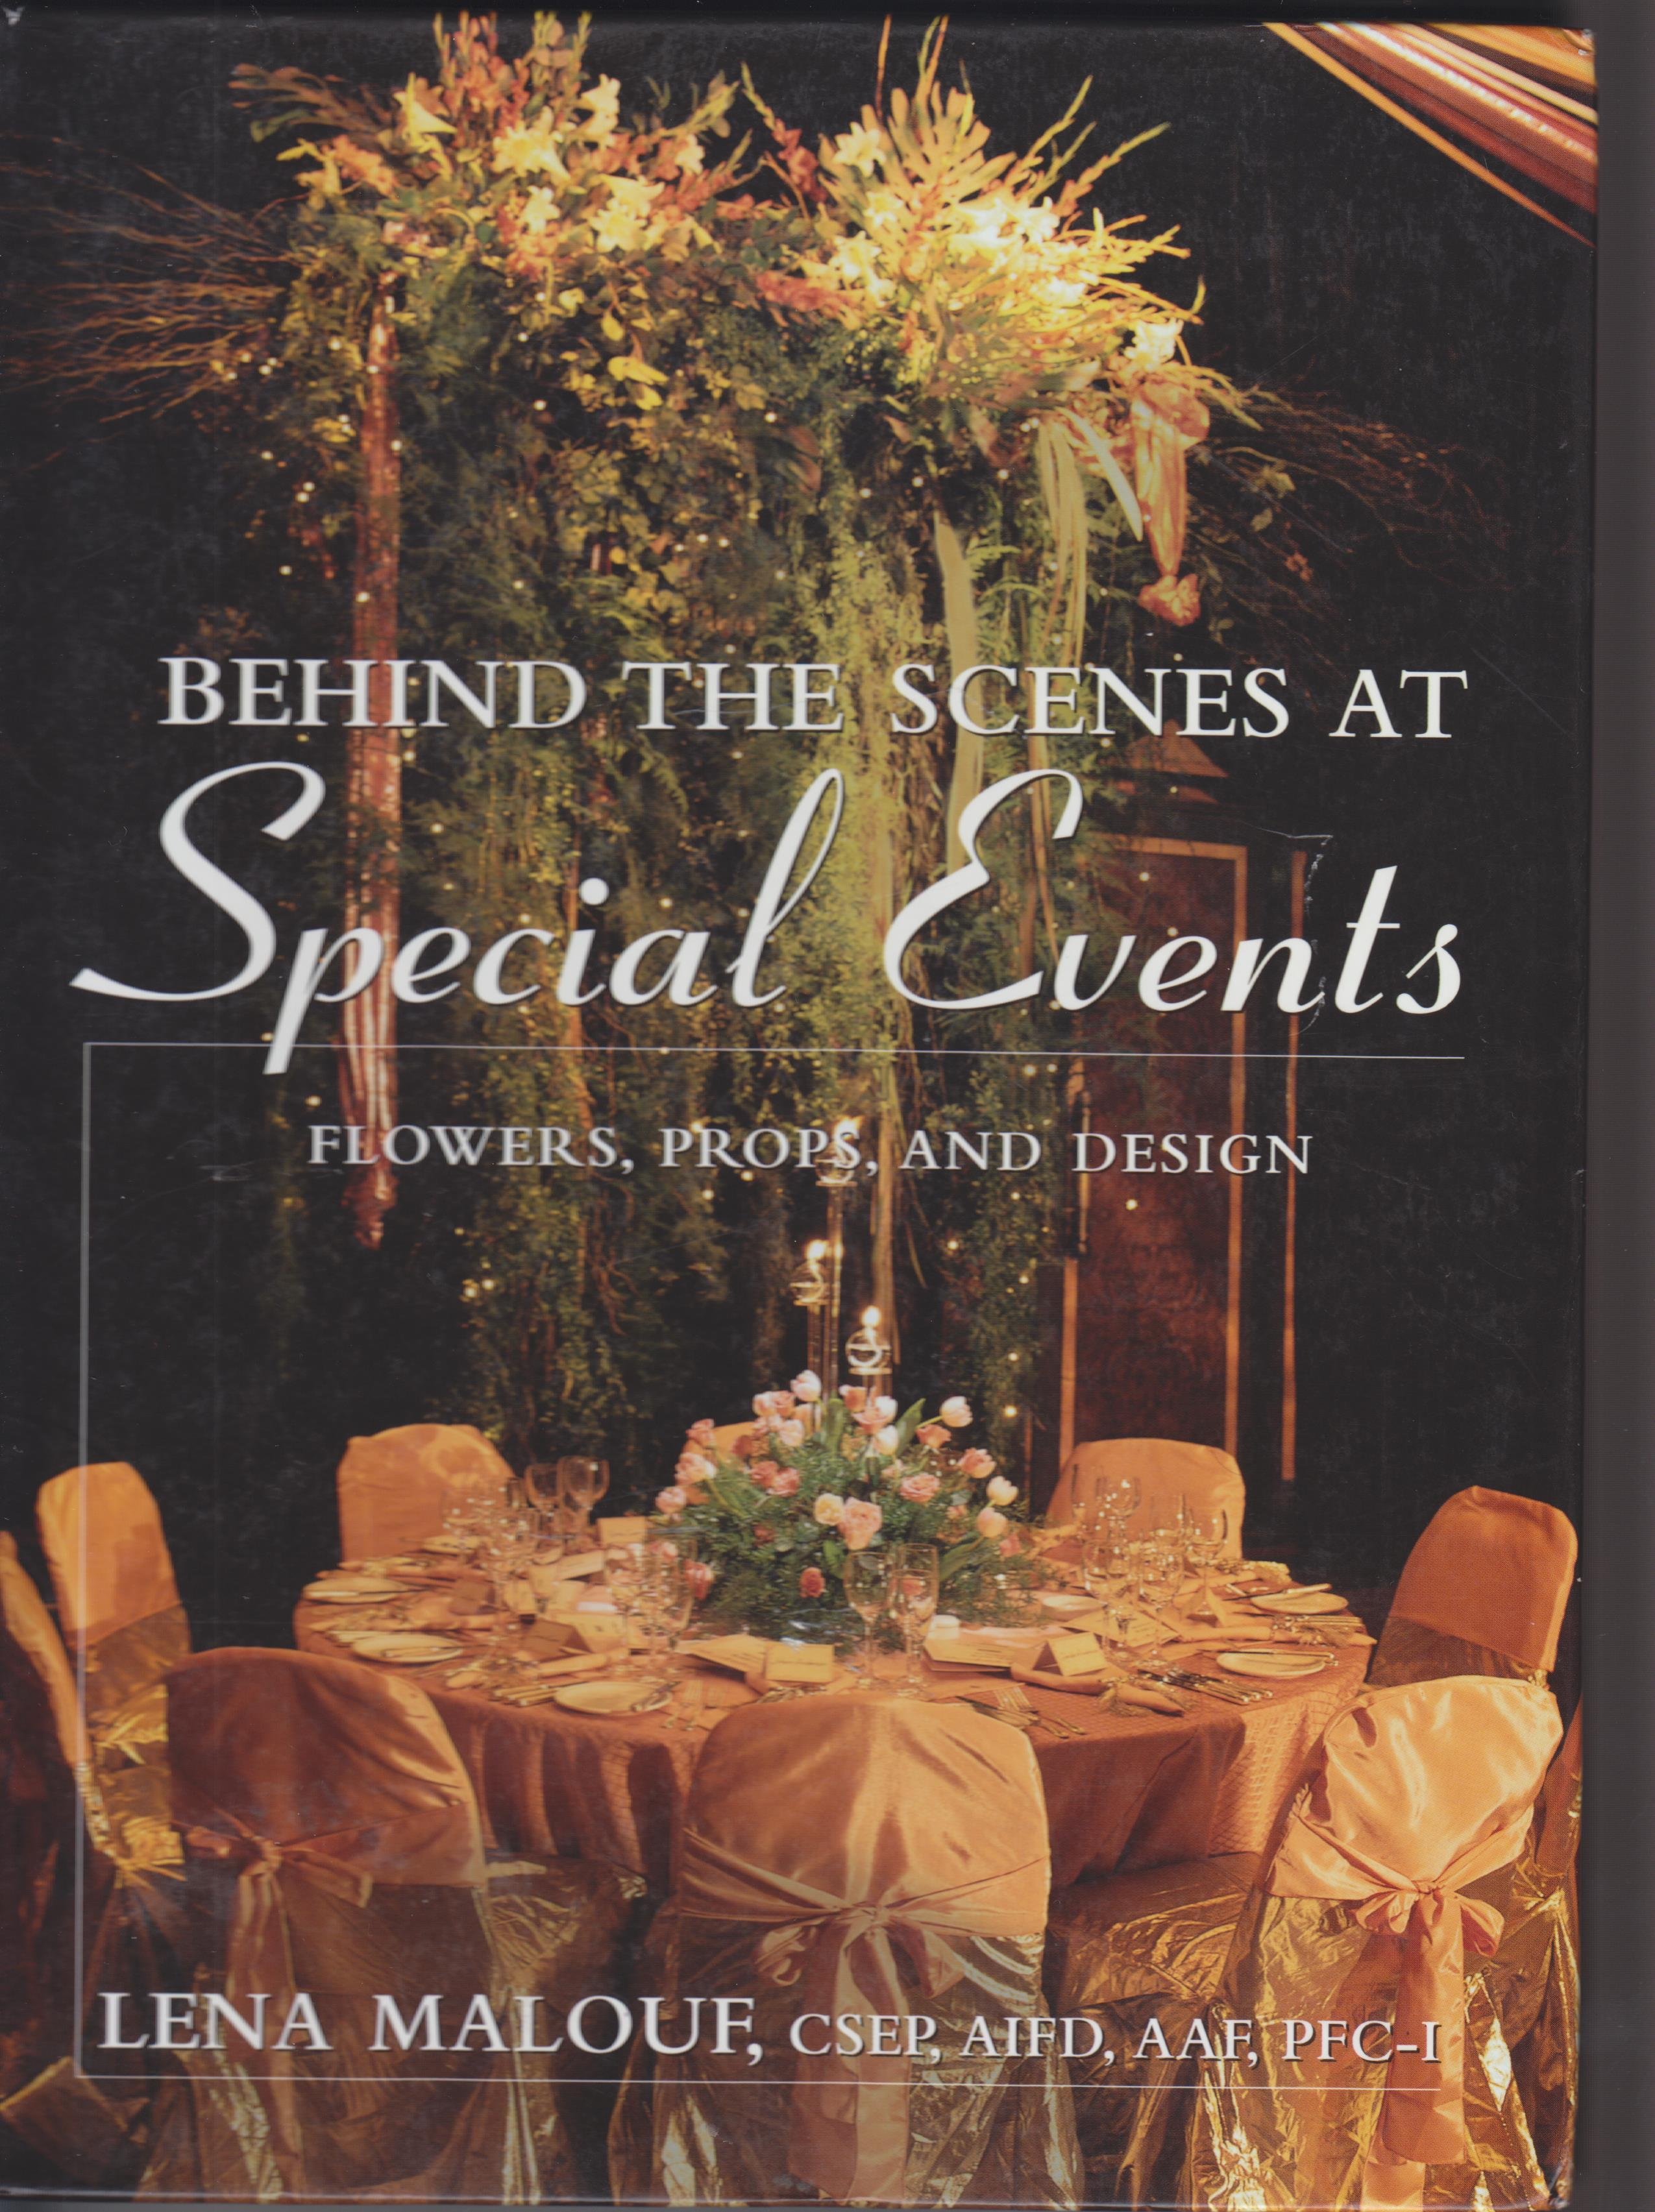 Image for Behind the Scenes at Special Events.